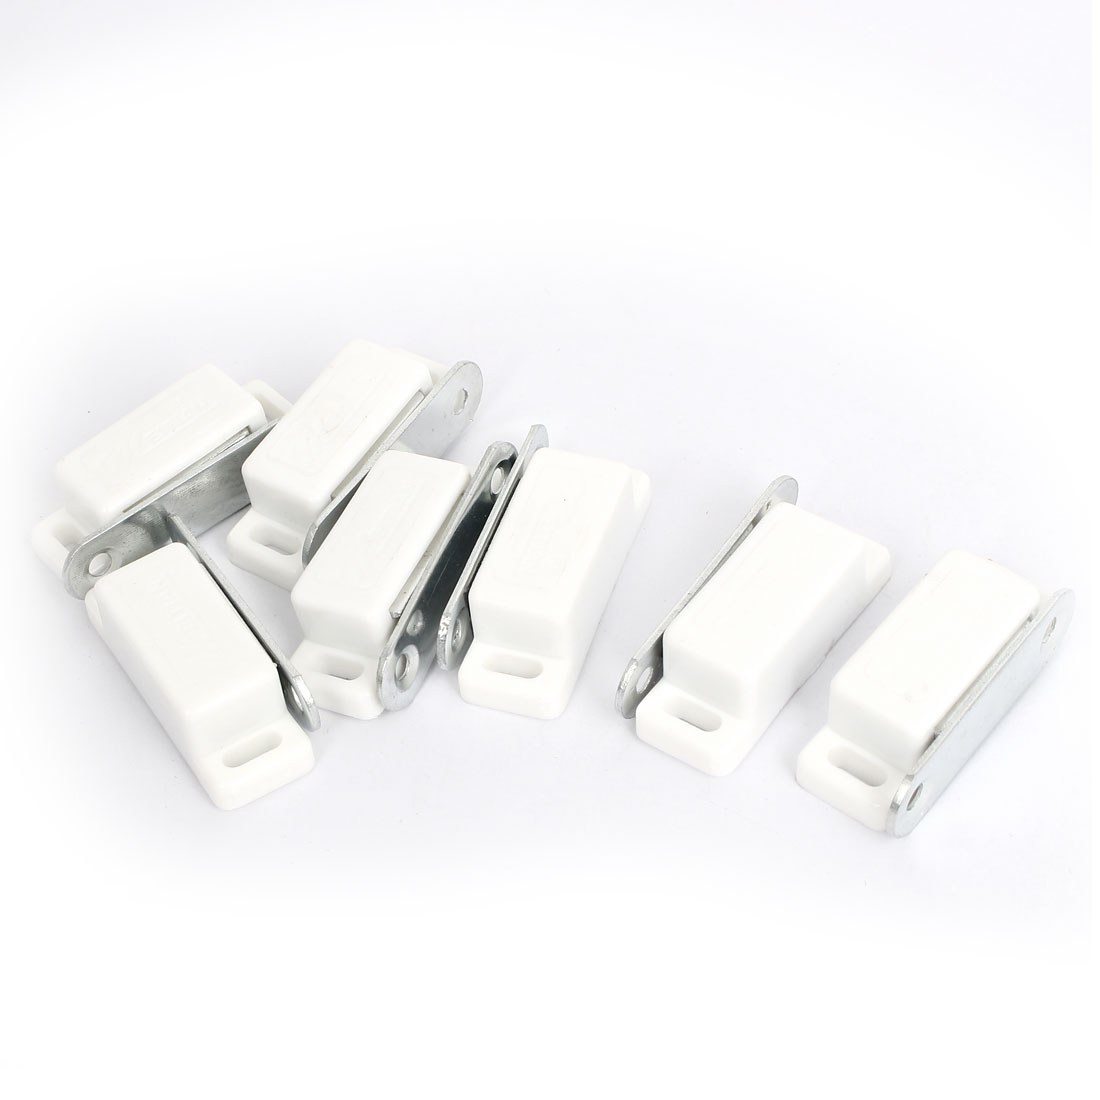 Cupboard Cabinet Closet Door Magnetic Latch Catch 46mm Length 7pcs